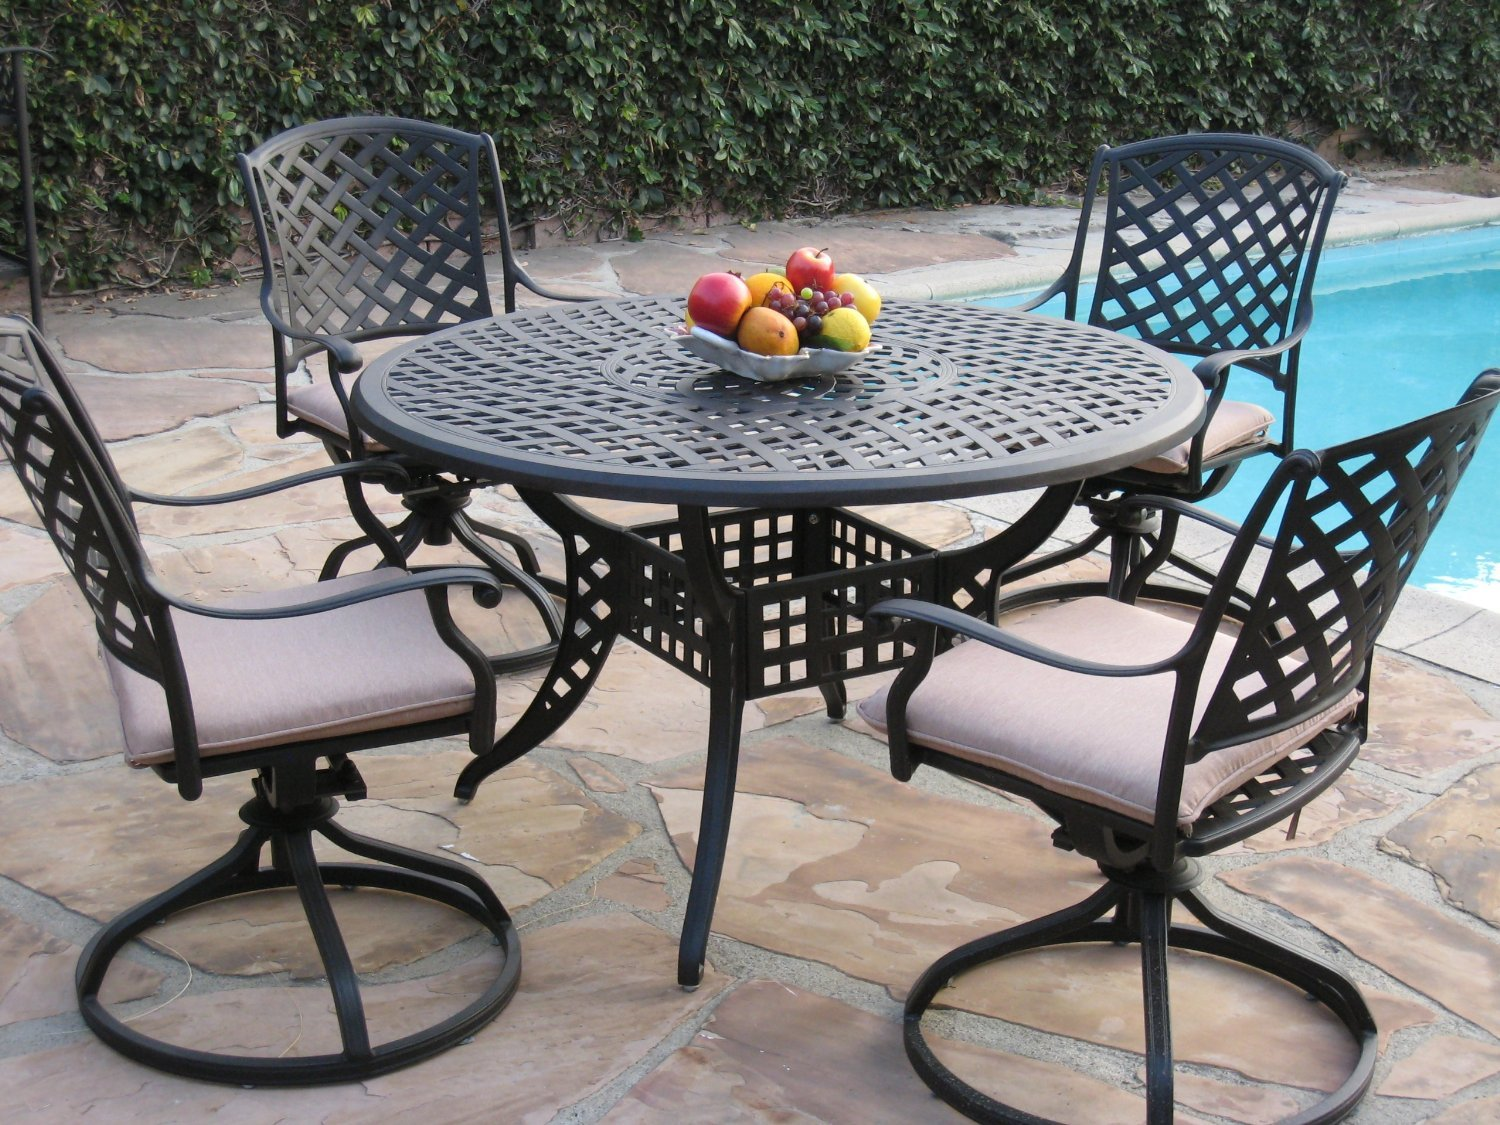 Amazon.com: Kawaii Collection Cast Aluminum Outdoor Patio Furniture 5 Piece Dining  Set With 4 Swivel Rockers MLV120T CBM1290: Garden U0026 Outdoor